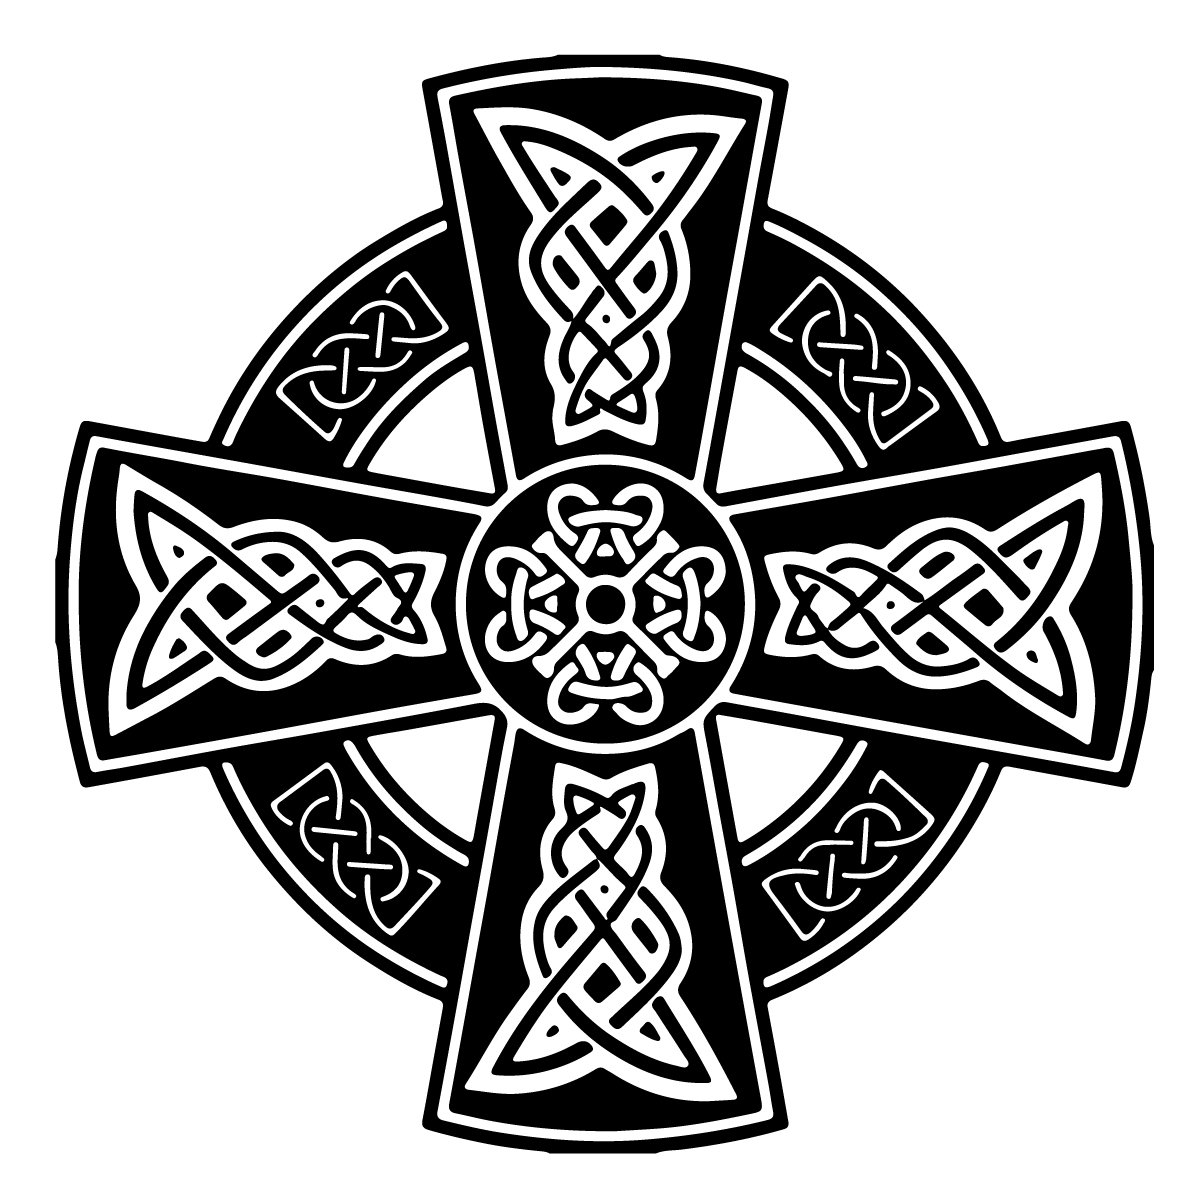 Irish Symbols And Their Meanings Mythologian Net